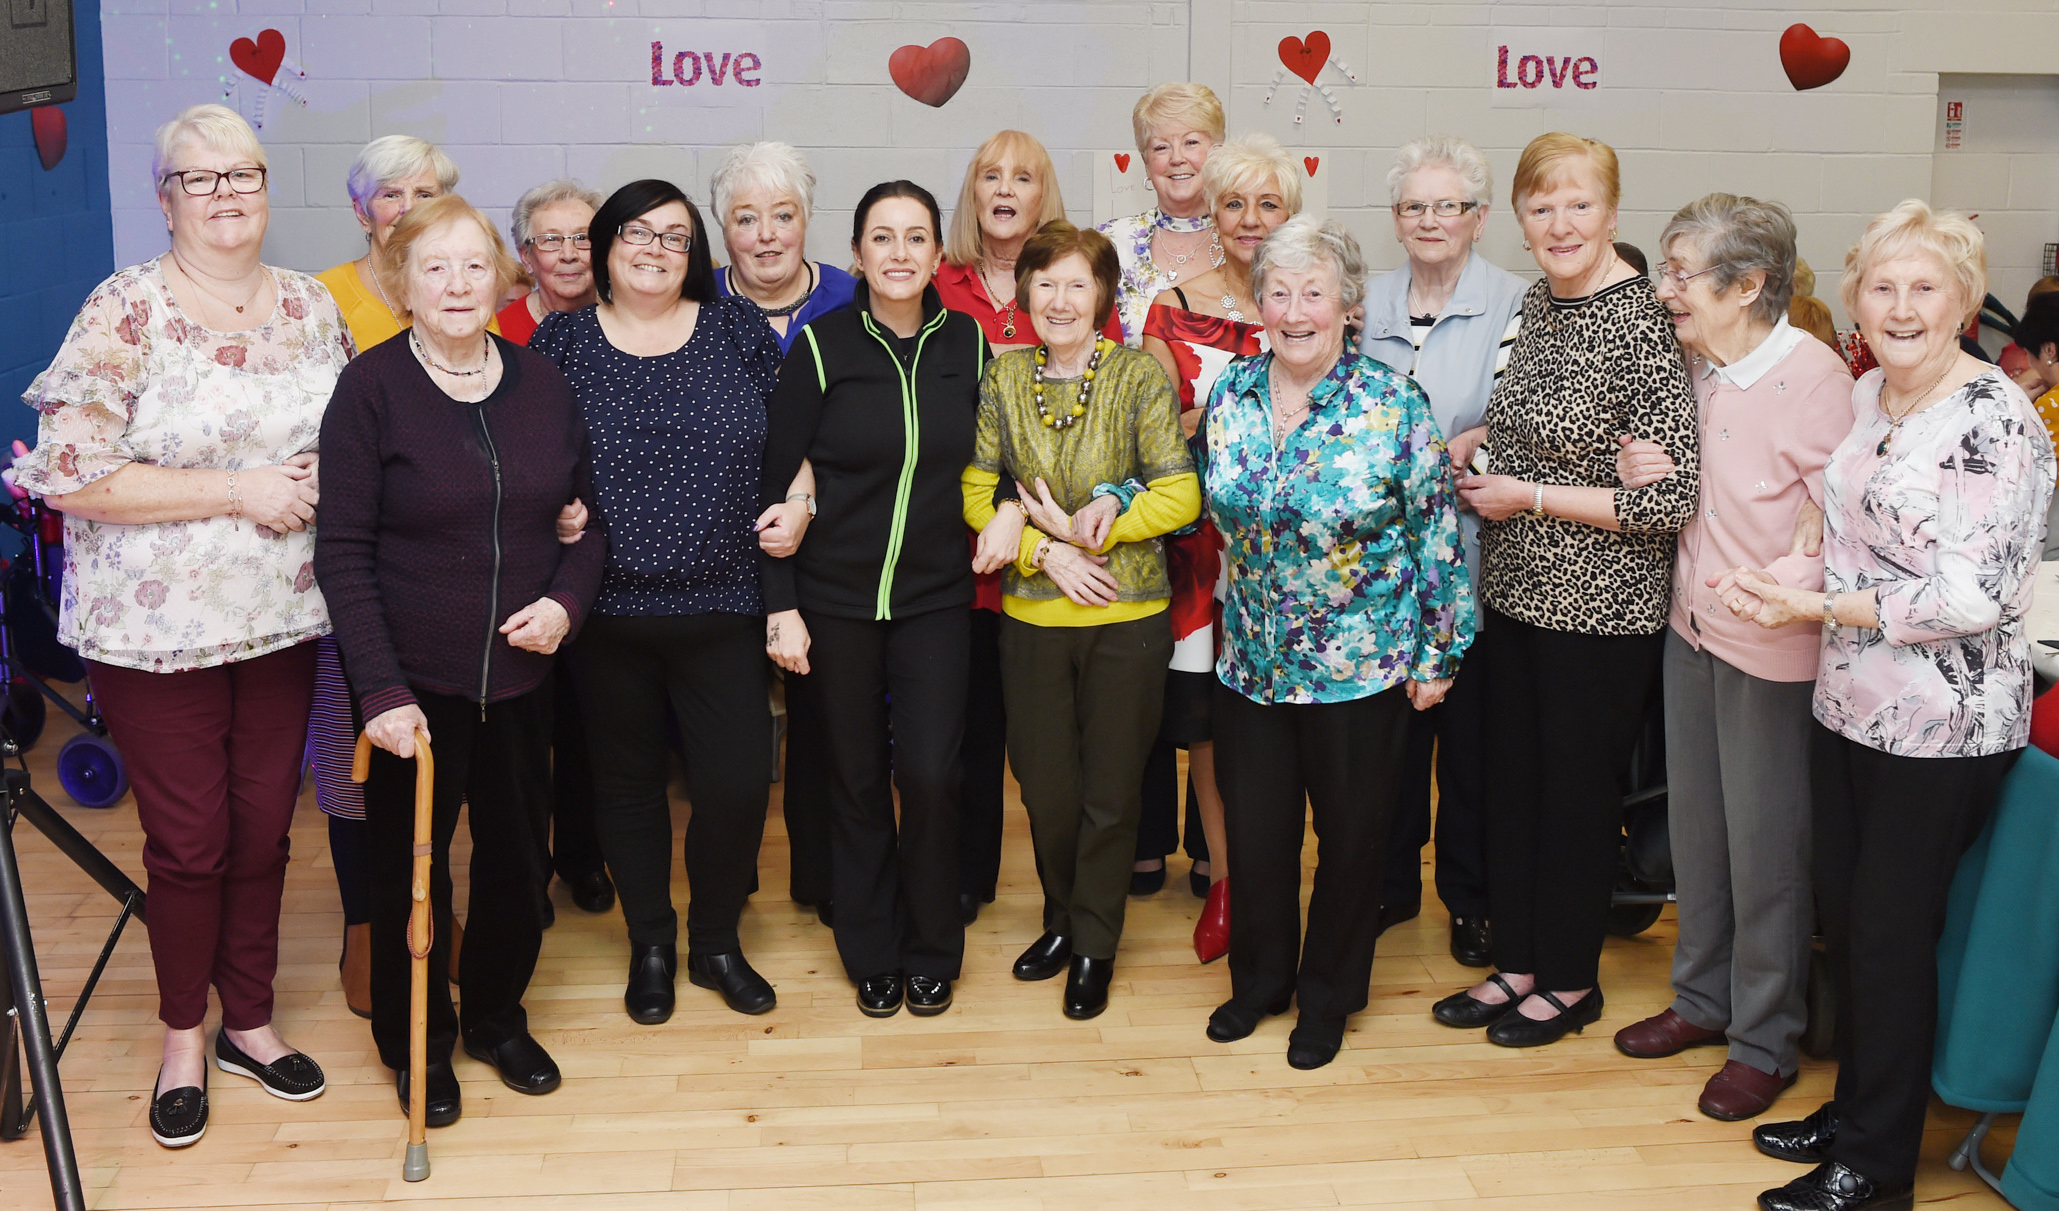 Asda Belfast Westwood community champion Noeleen McMahon at the Valentine's party